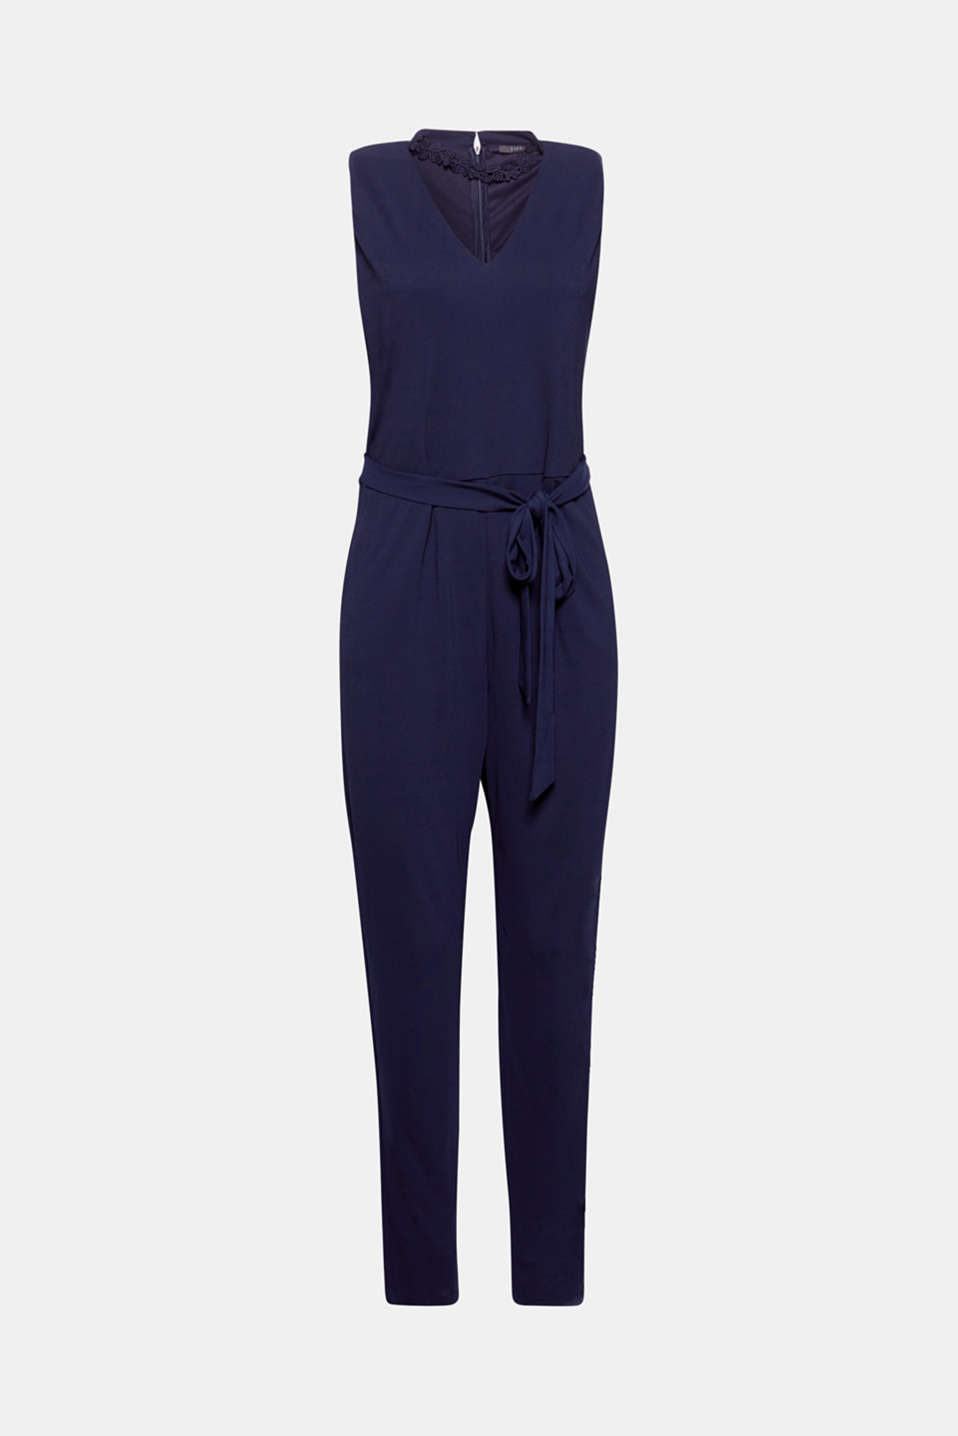 This jersey jumpsuit with decorative lace on the neckline and a wide tie-around belt is perfect for special occasions and still super comfortable!